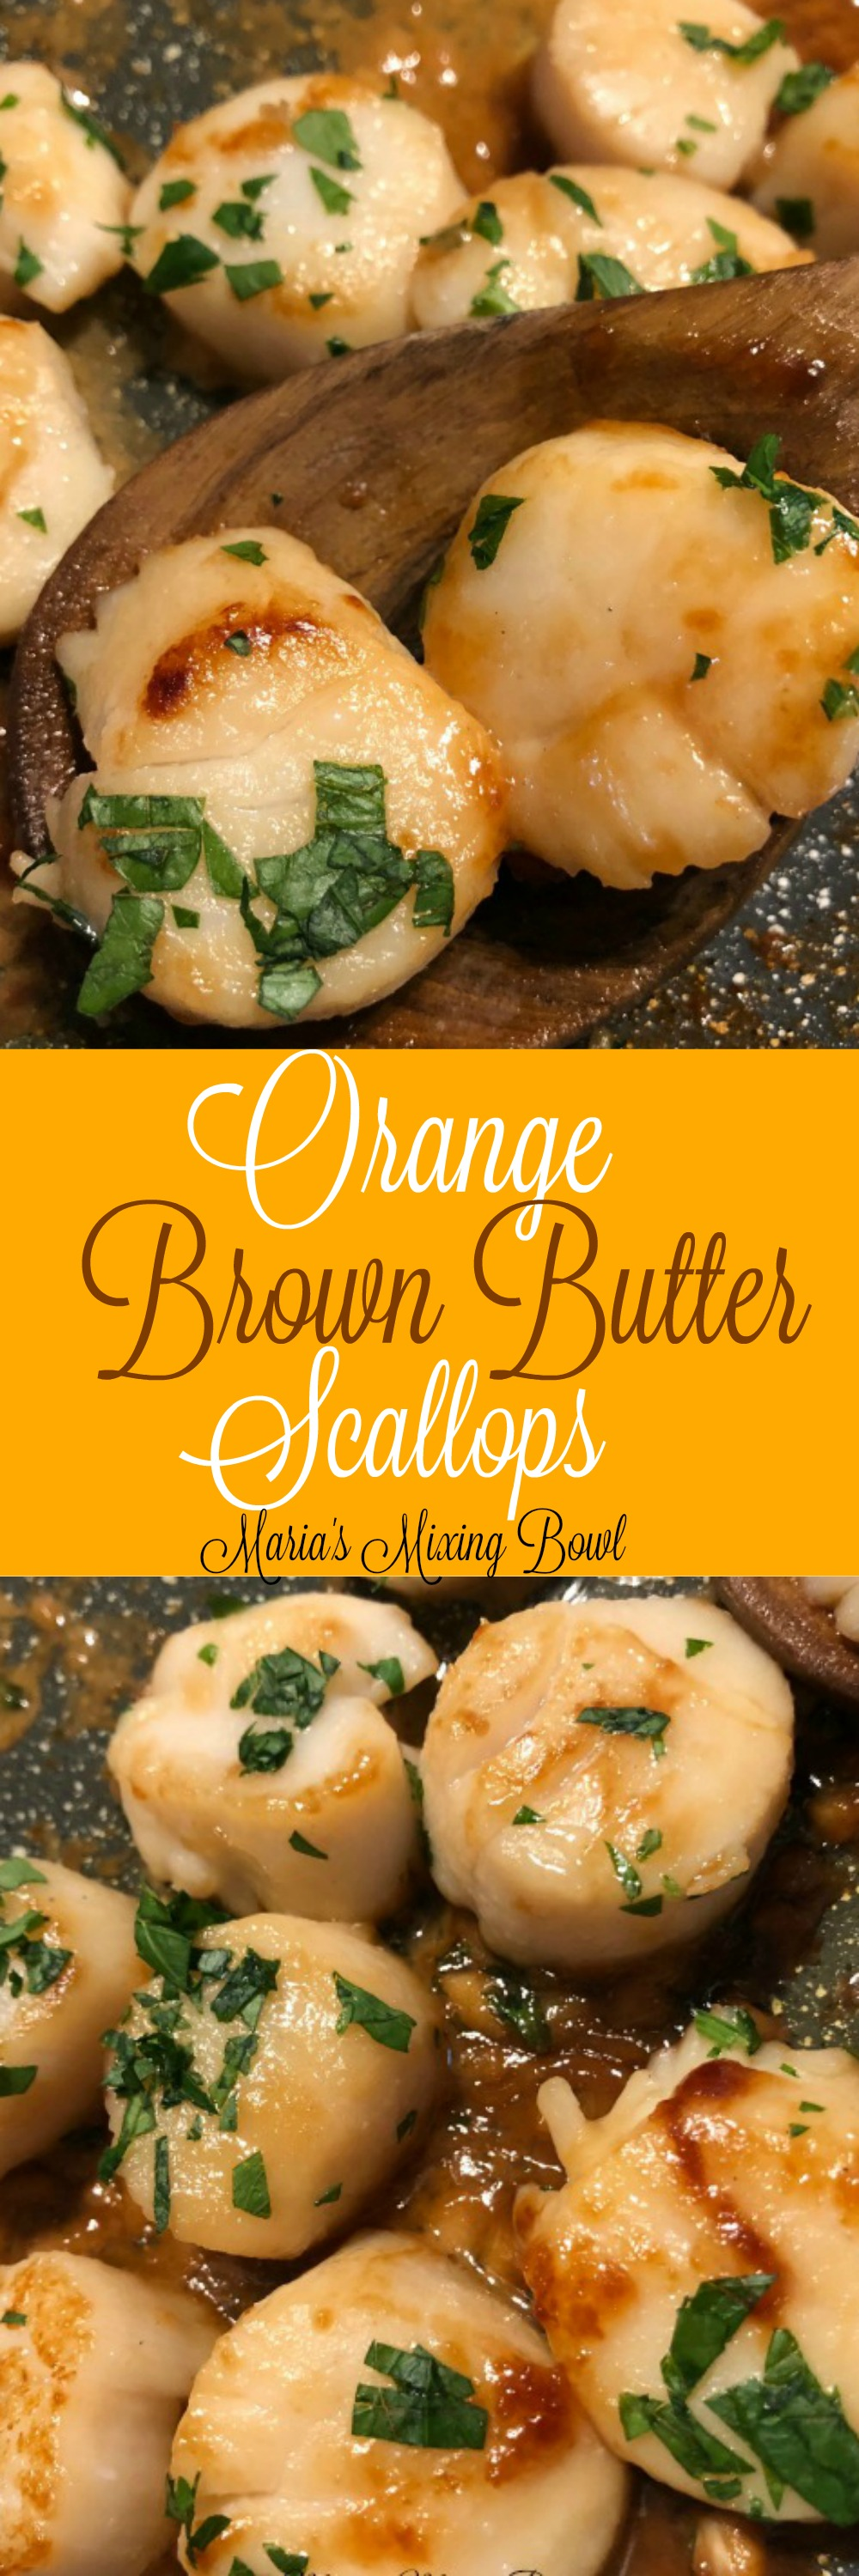 Orange Brown Butter Scallops Recipe- Seared Scallops with Orange Brown Butter  Sauce is easy to cook but also the perfect special occasion dinner. #orange #scallops #brown #butter #seafood #delicious #easy #companydinner #weeknightmeal